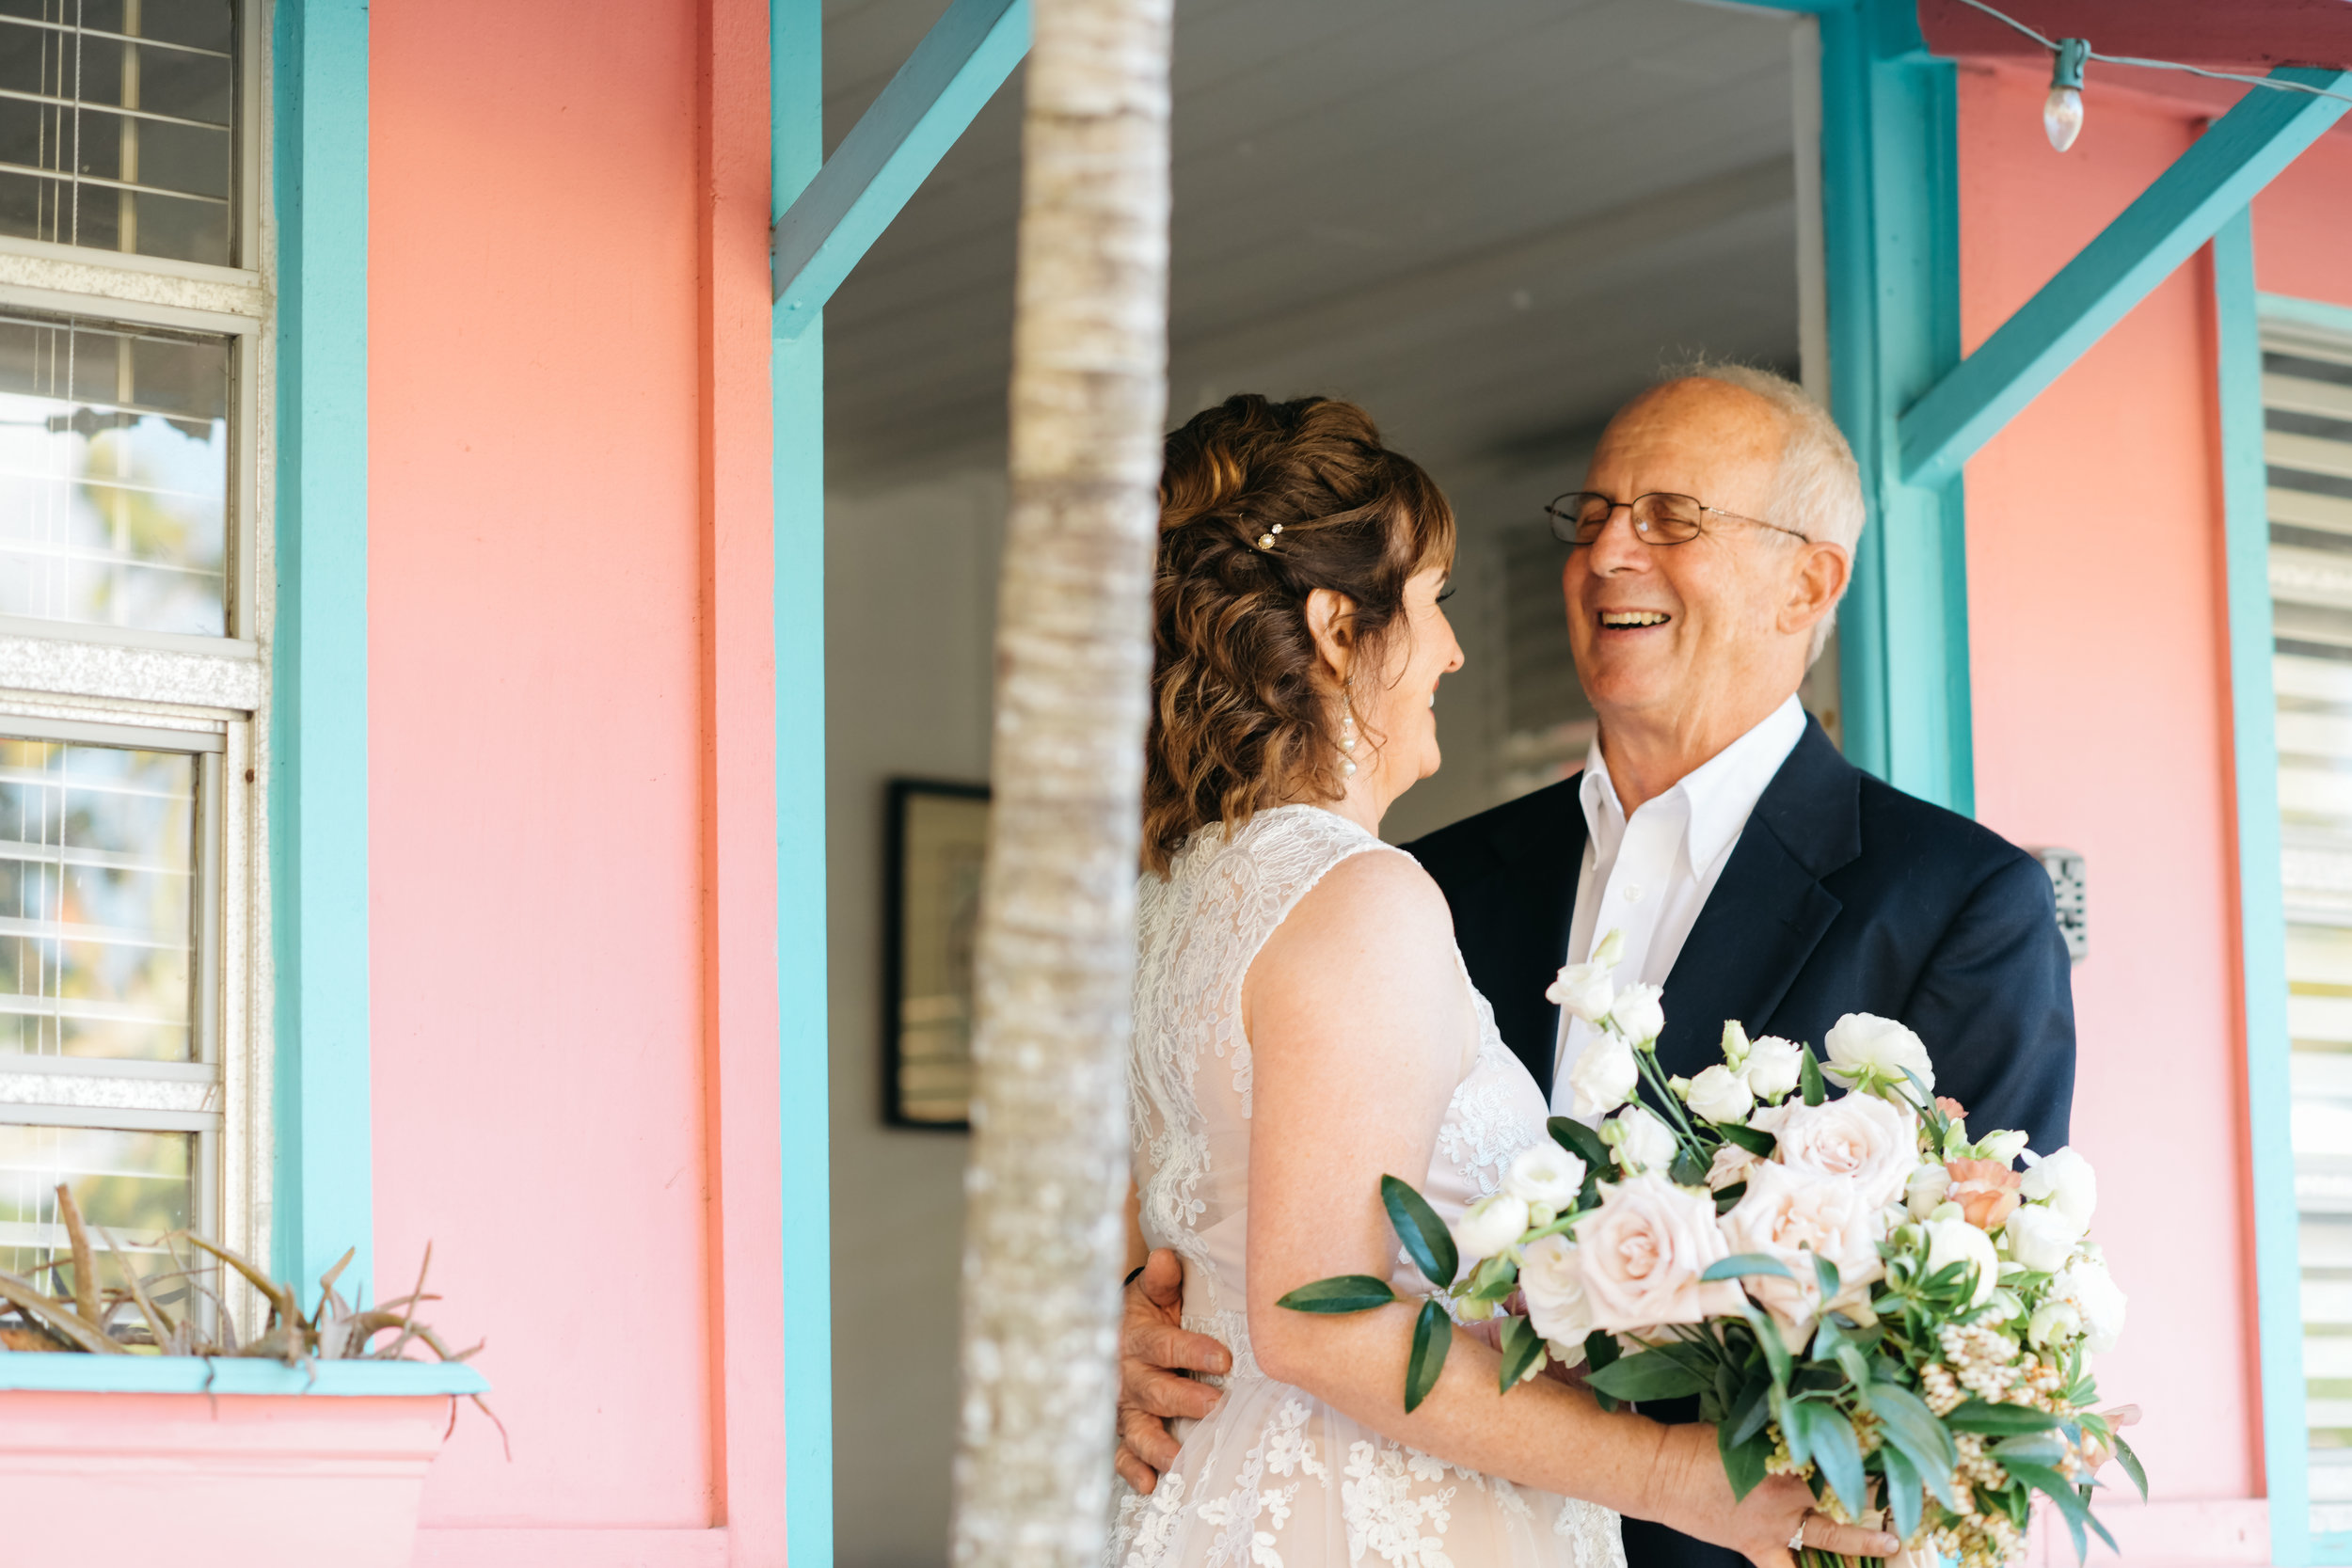 Julie_Bob_Siesta_Key_Wedding_April_2018-25.jpg